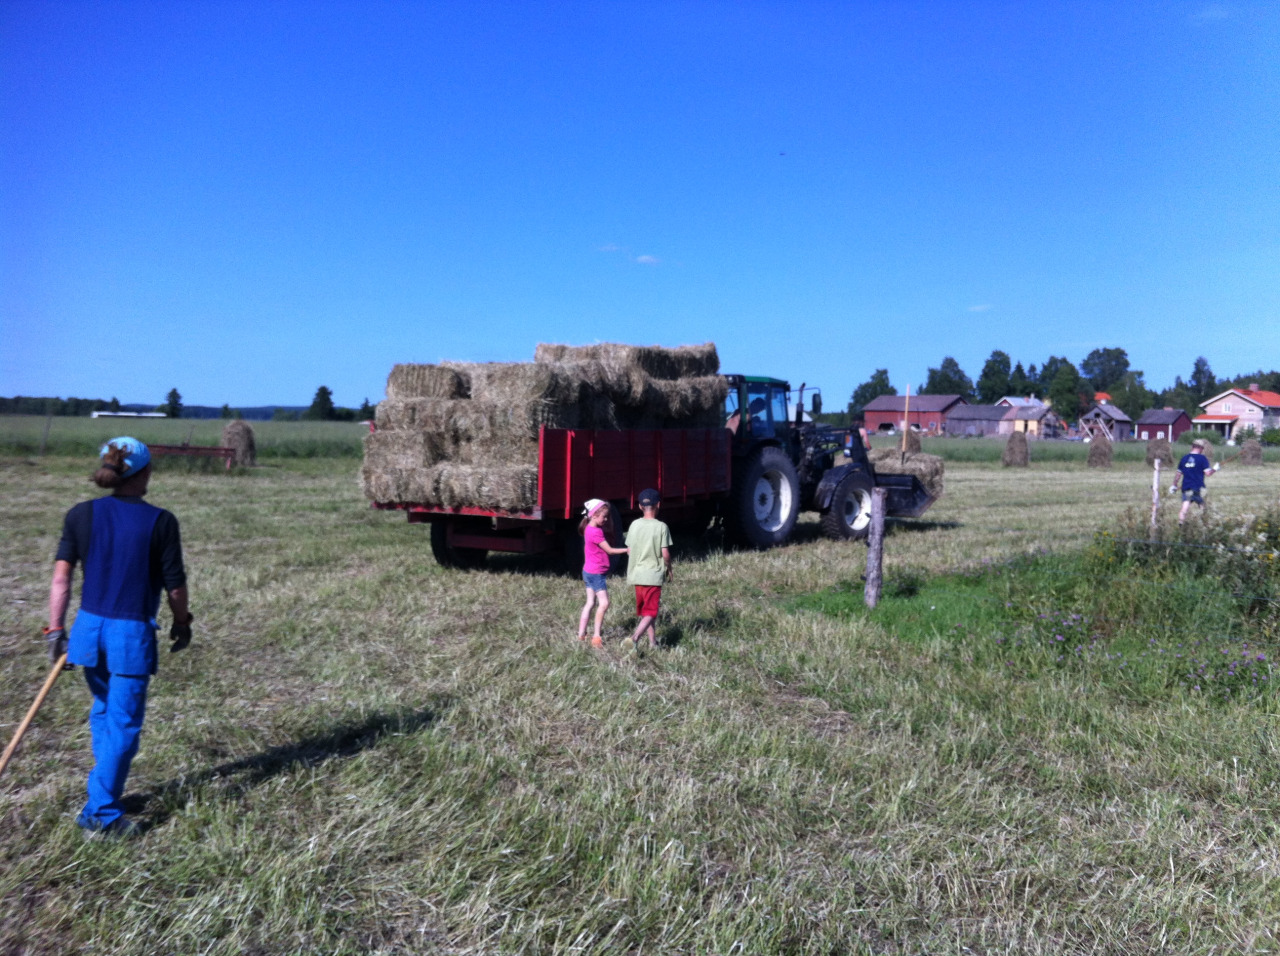 It's time for making and storing the straw bales! A hard works that's is much better to do with many more people